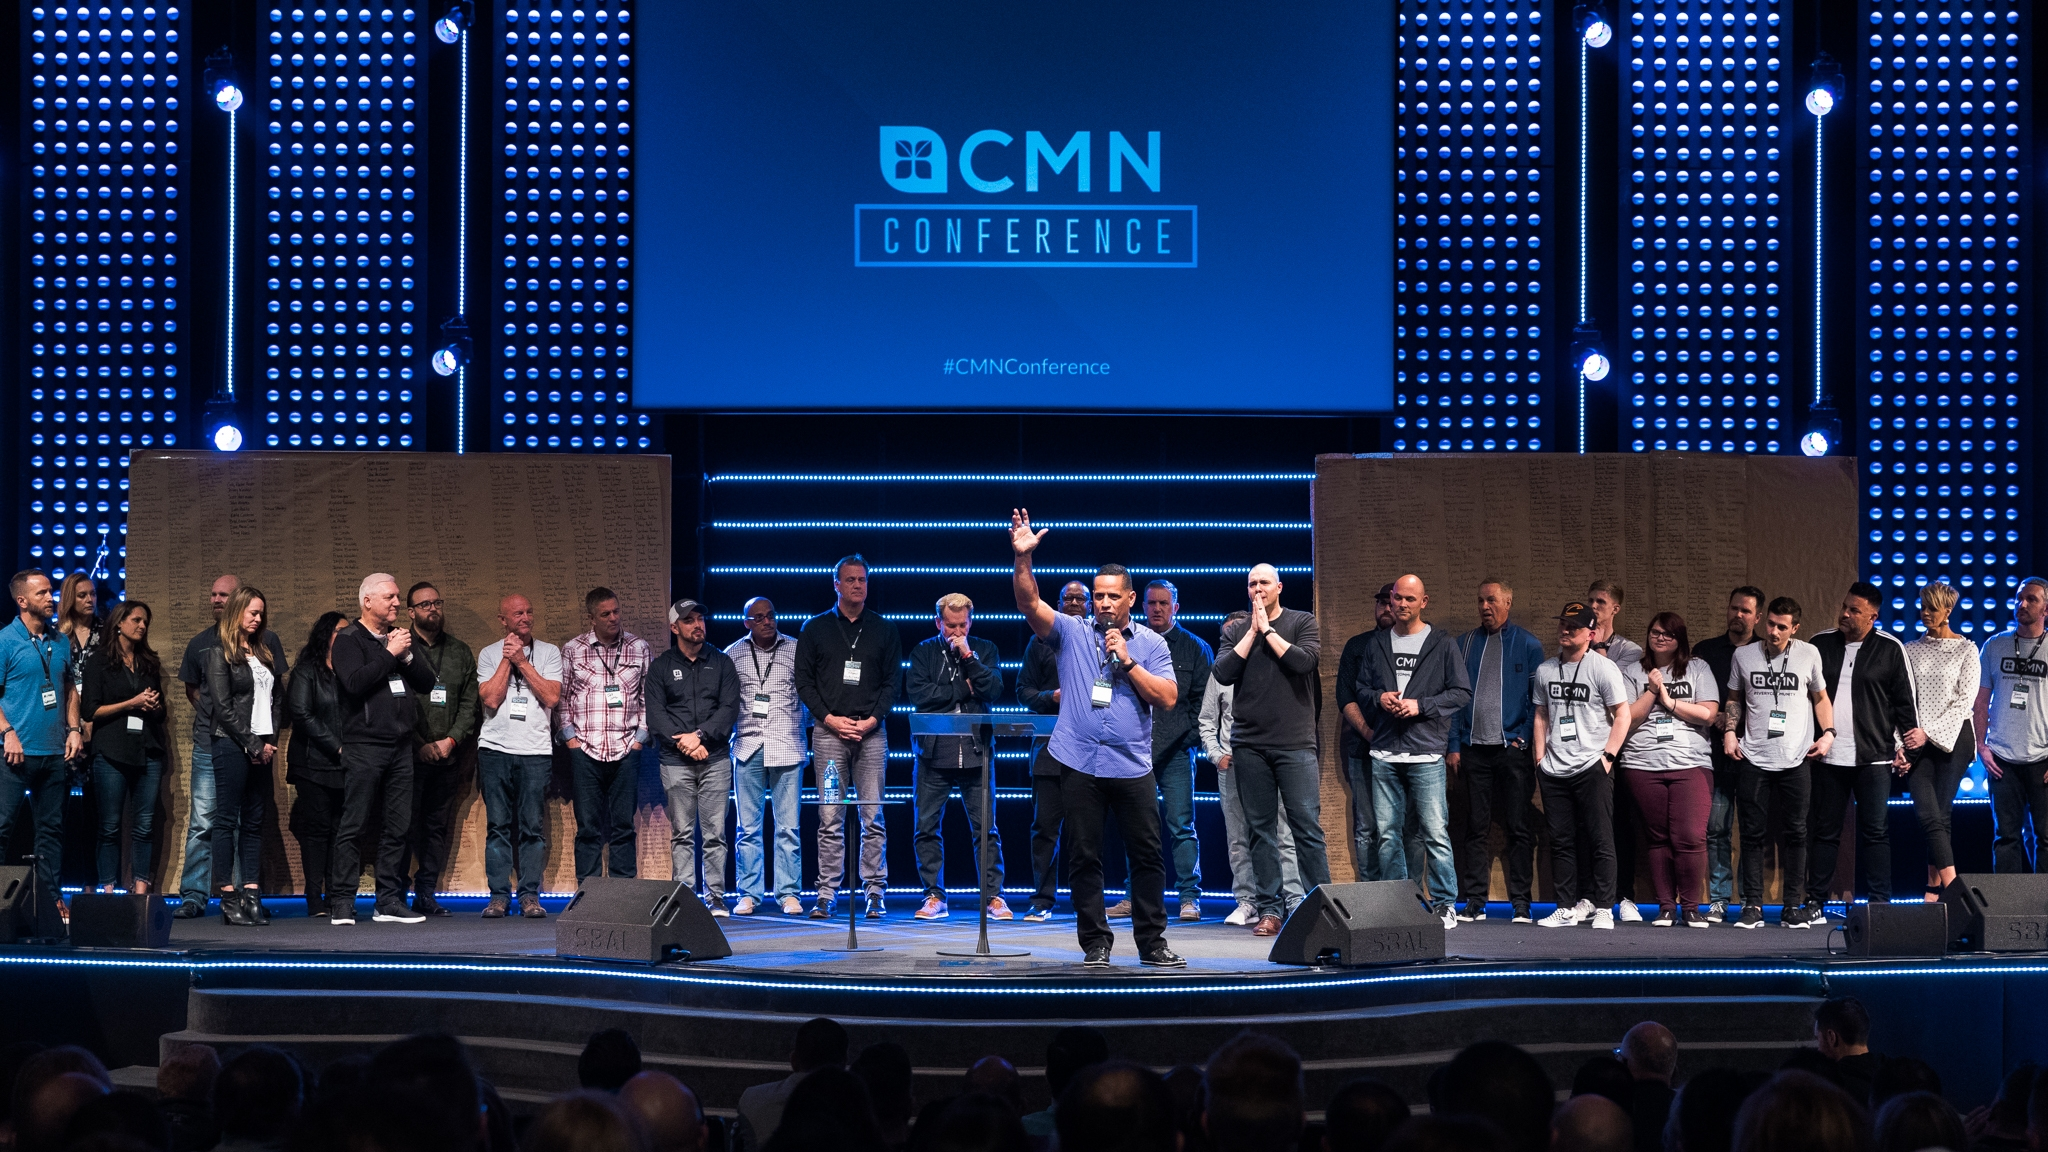 "Last year's CMN Conference was attended by roughly 1,200 people at Calvary Church in Dallas, TX. Feedback from the event was overwhelmingly positive, with attendees citing the ""family feel,"" encouraging speakers, and excellence of the conference experience."